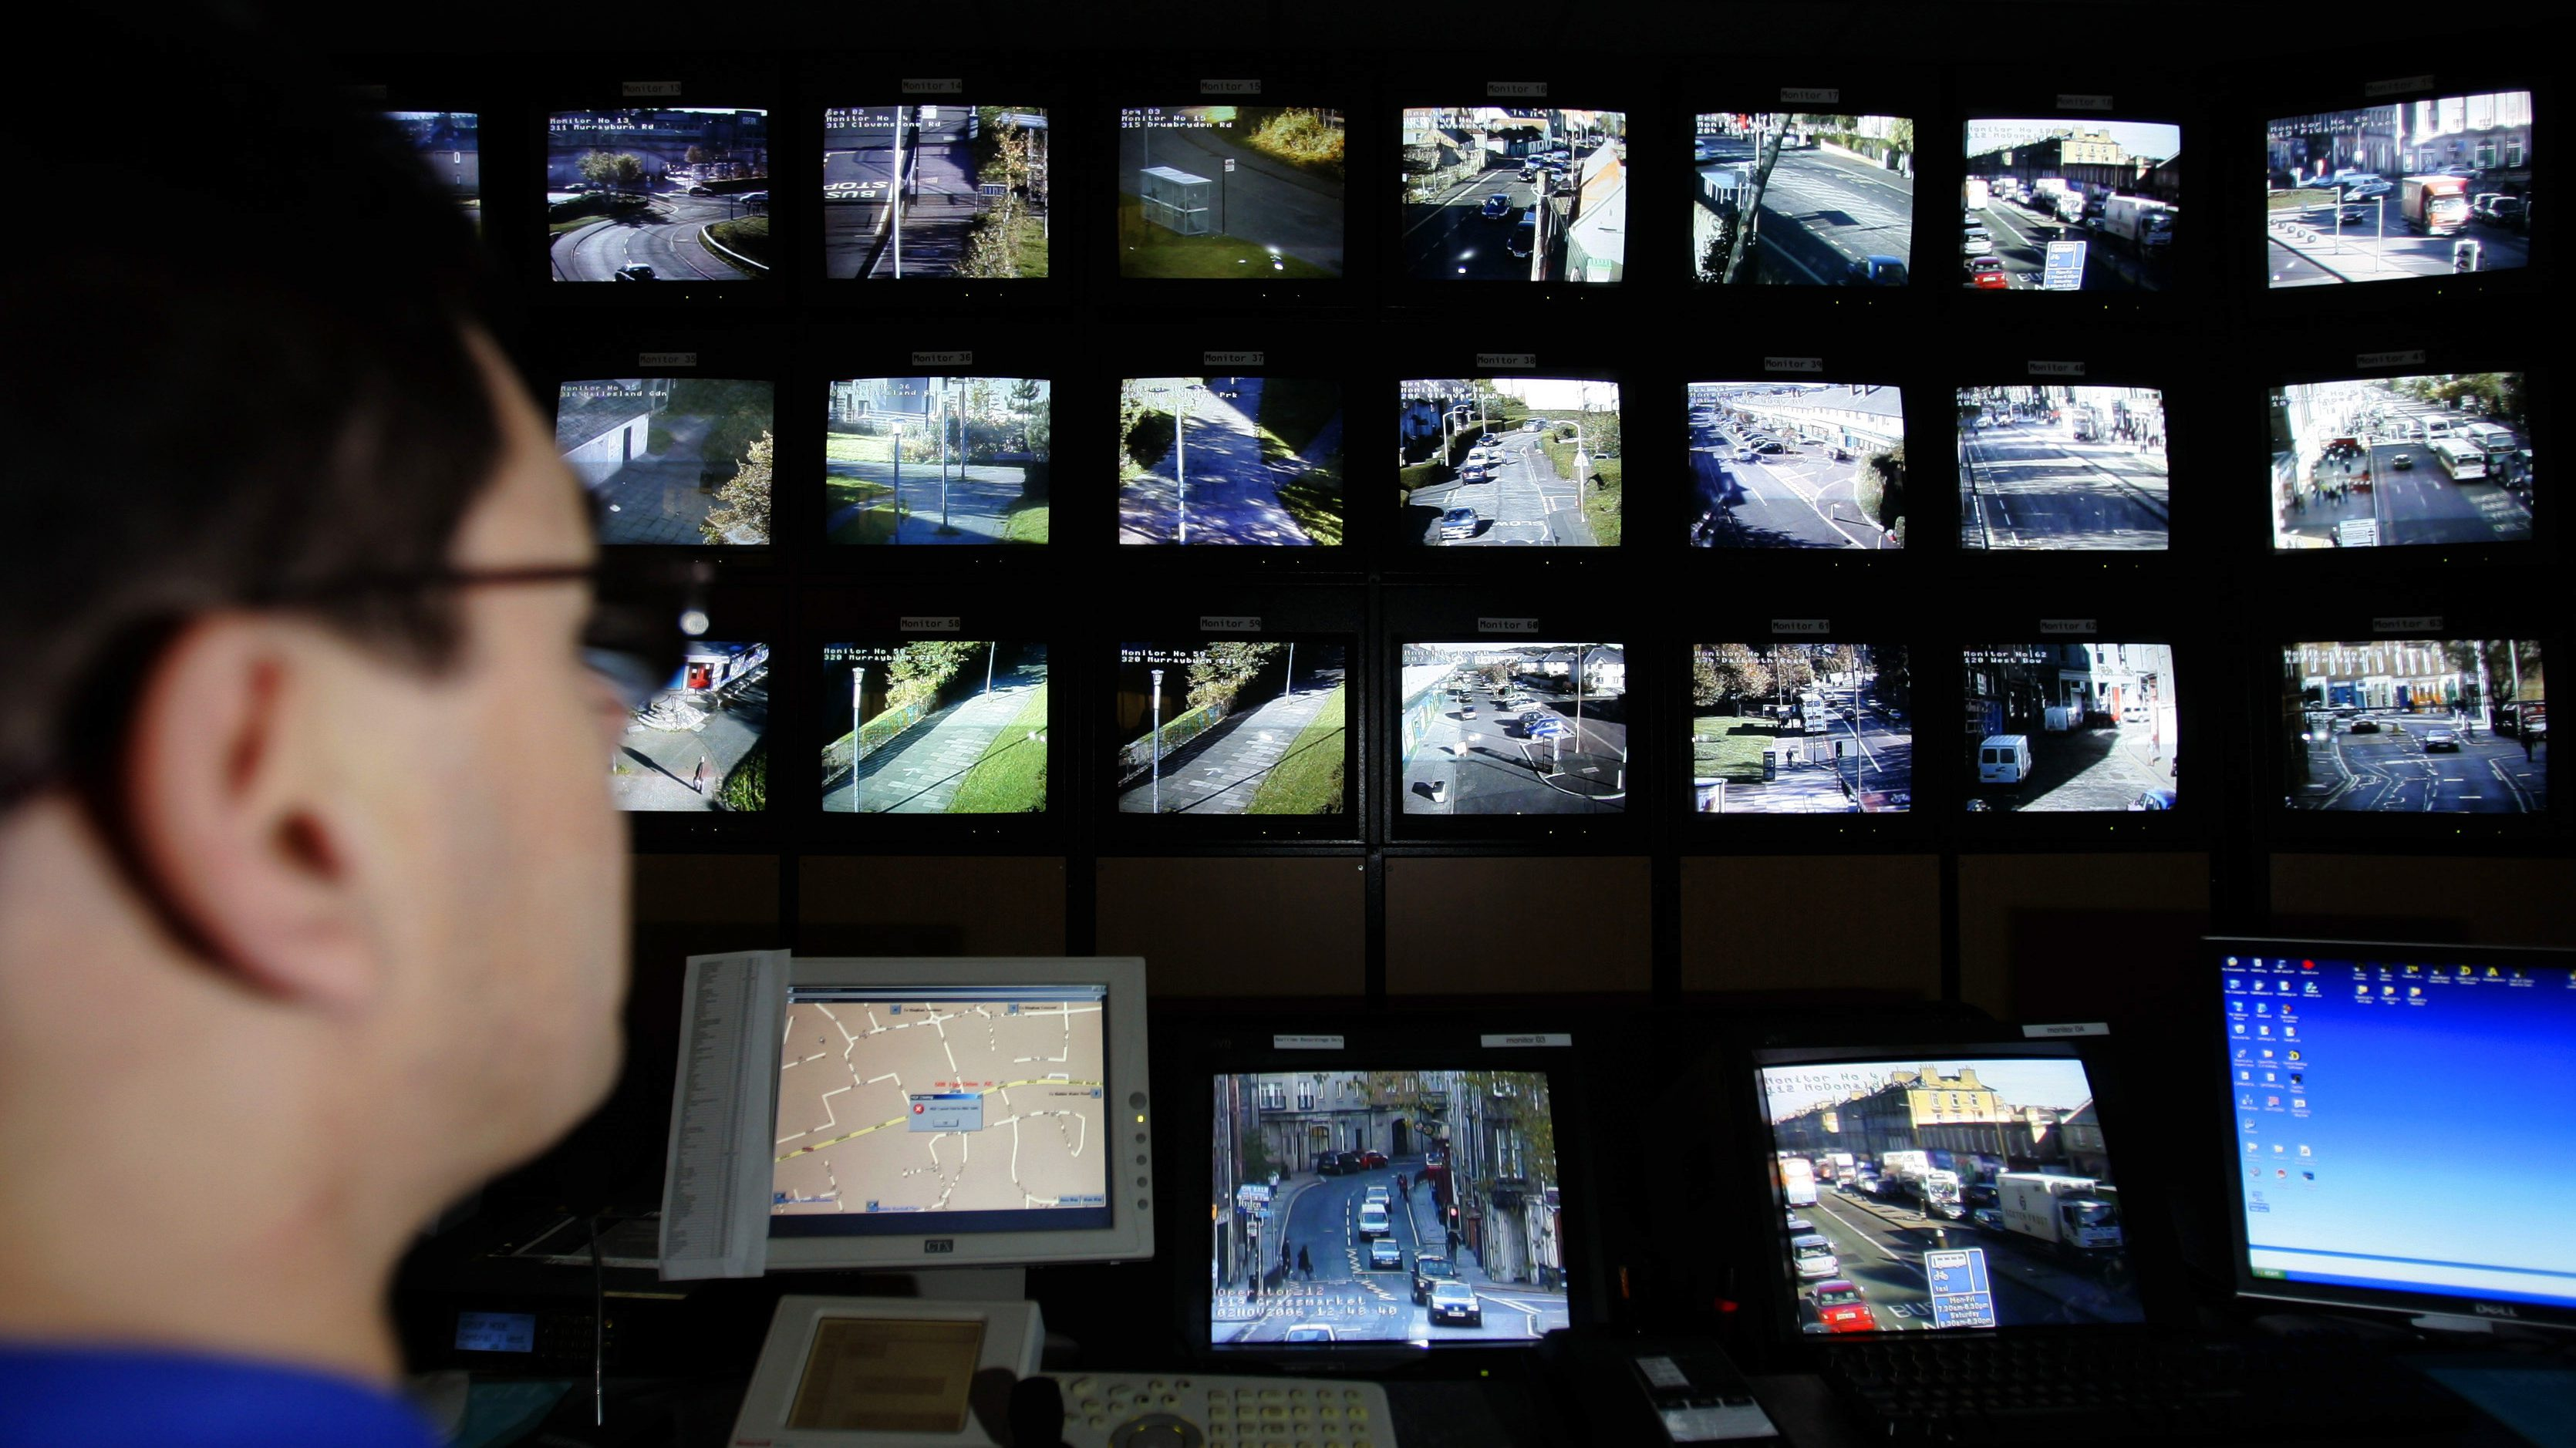 "A surveillance monitoring expert watches a bank of screens showing images from Edinburgh City Council's network of CCTV cameras in Edinburgh, Scotland November 2, 2006. Britain is becoming a surveillance society where individuals are filmed hundreds of times a day by security cameras and where firms ""data mine"" to build customer profiles, its information commissioner said on Thursday."